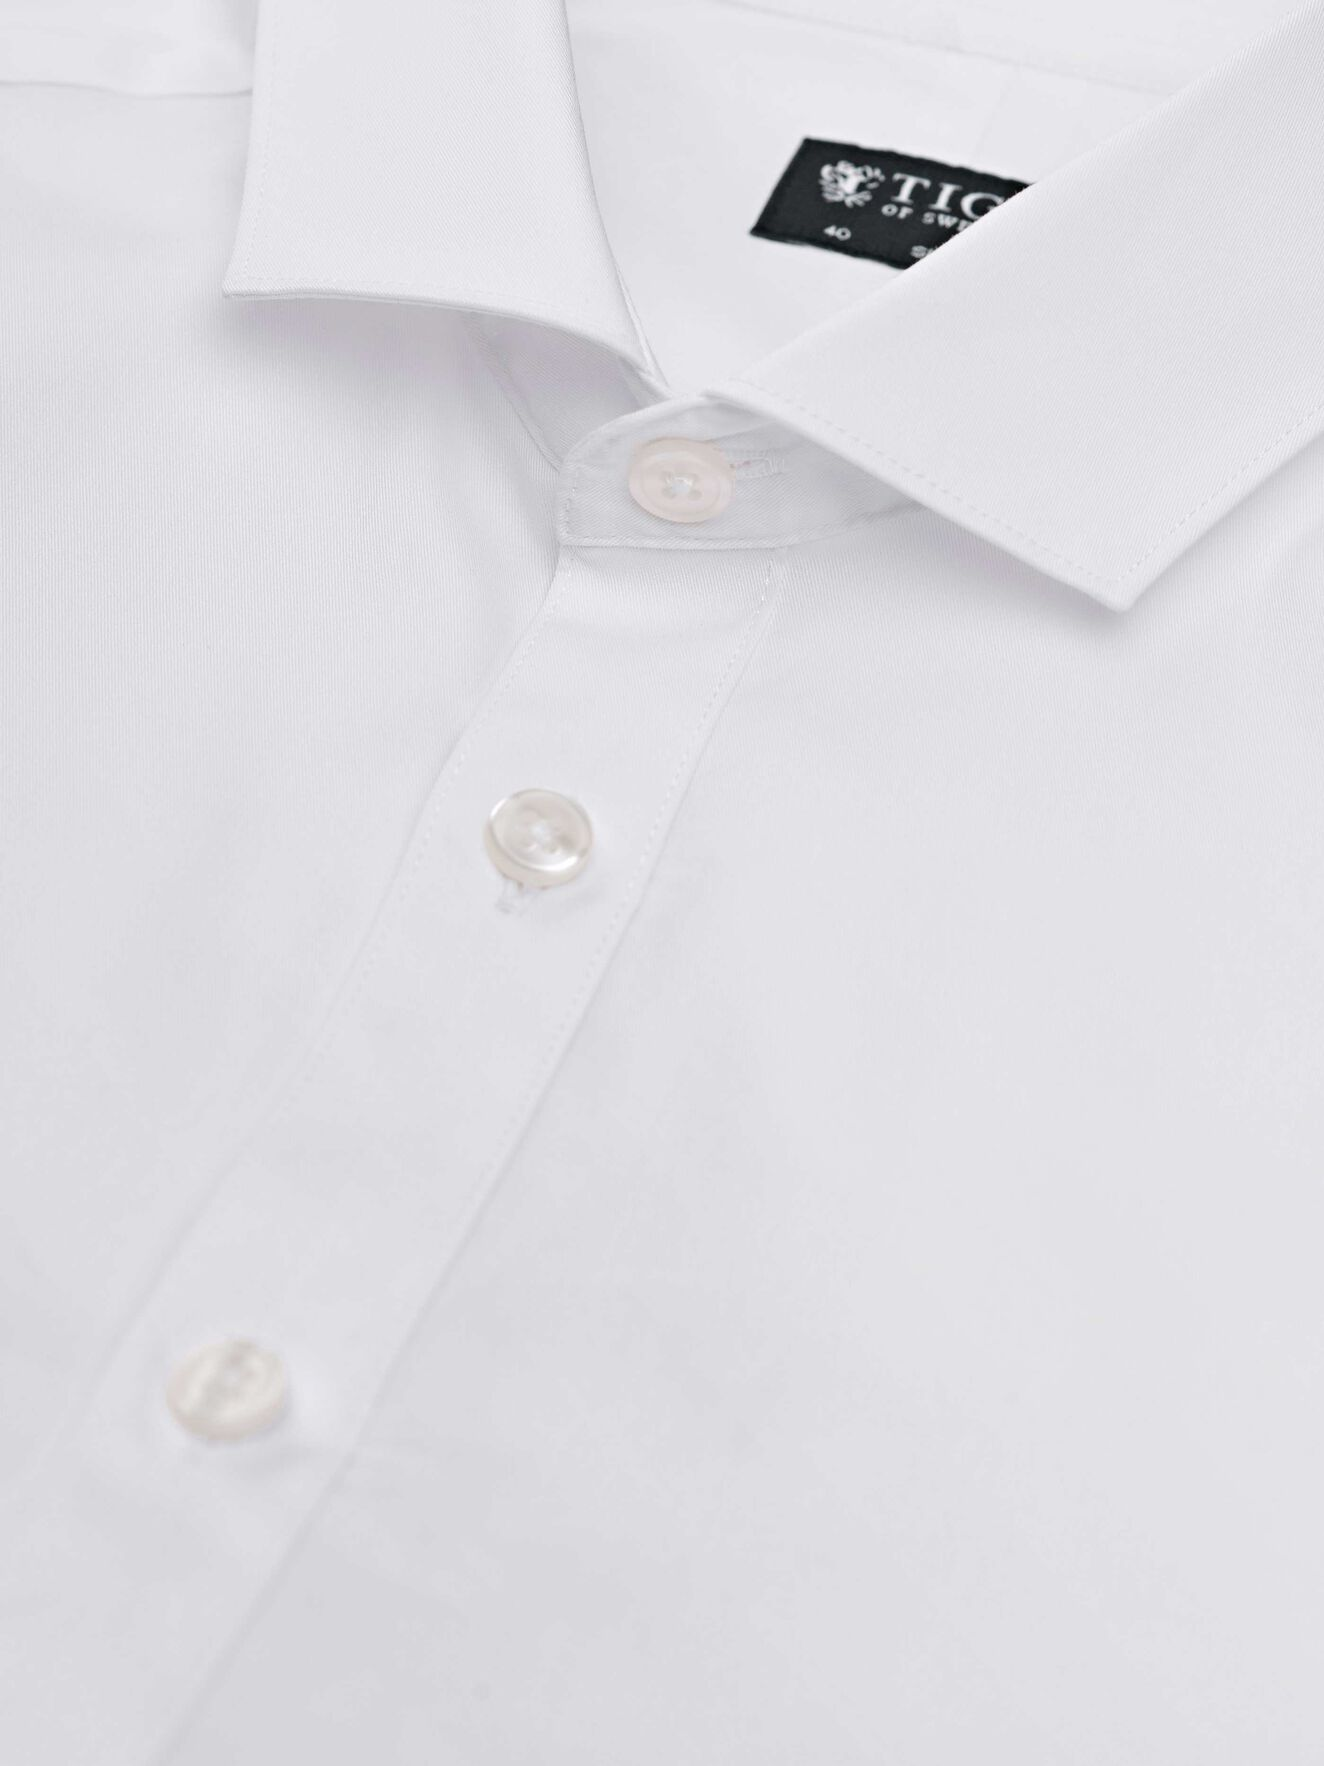 Steel 1 Shirt in Pure white from Tiger of Sweden